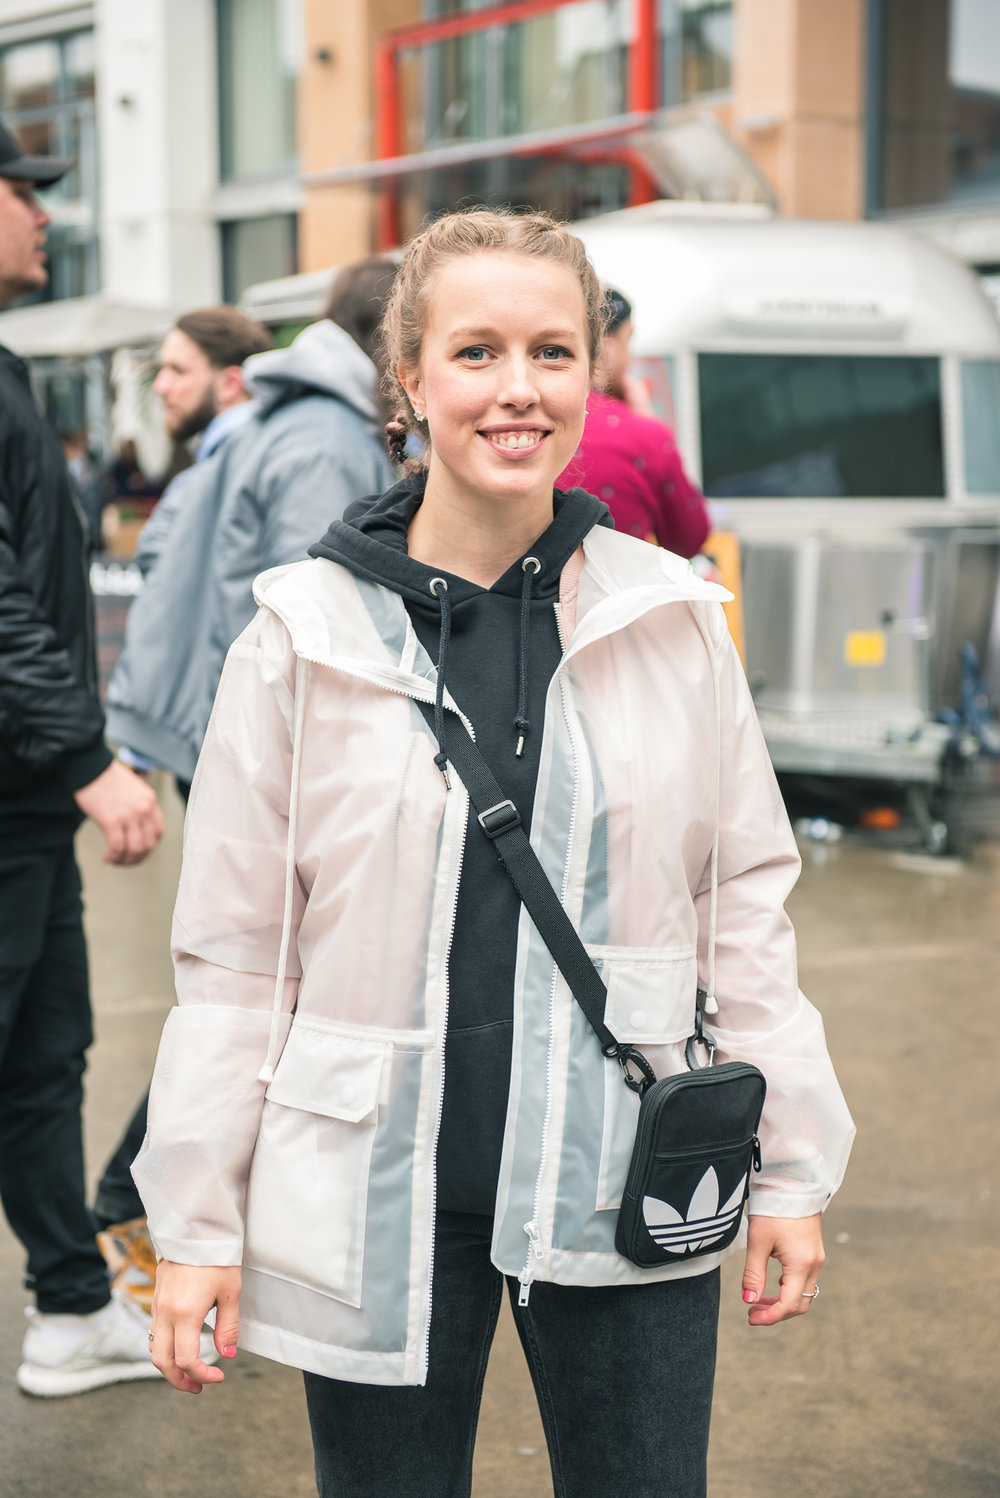 H&M LM Musikkfest 2017-42.jpg